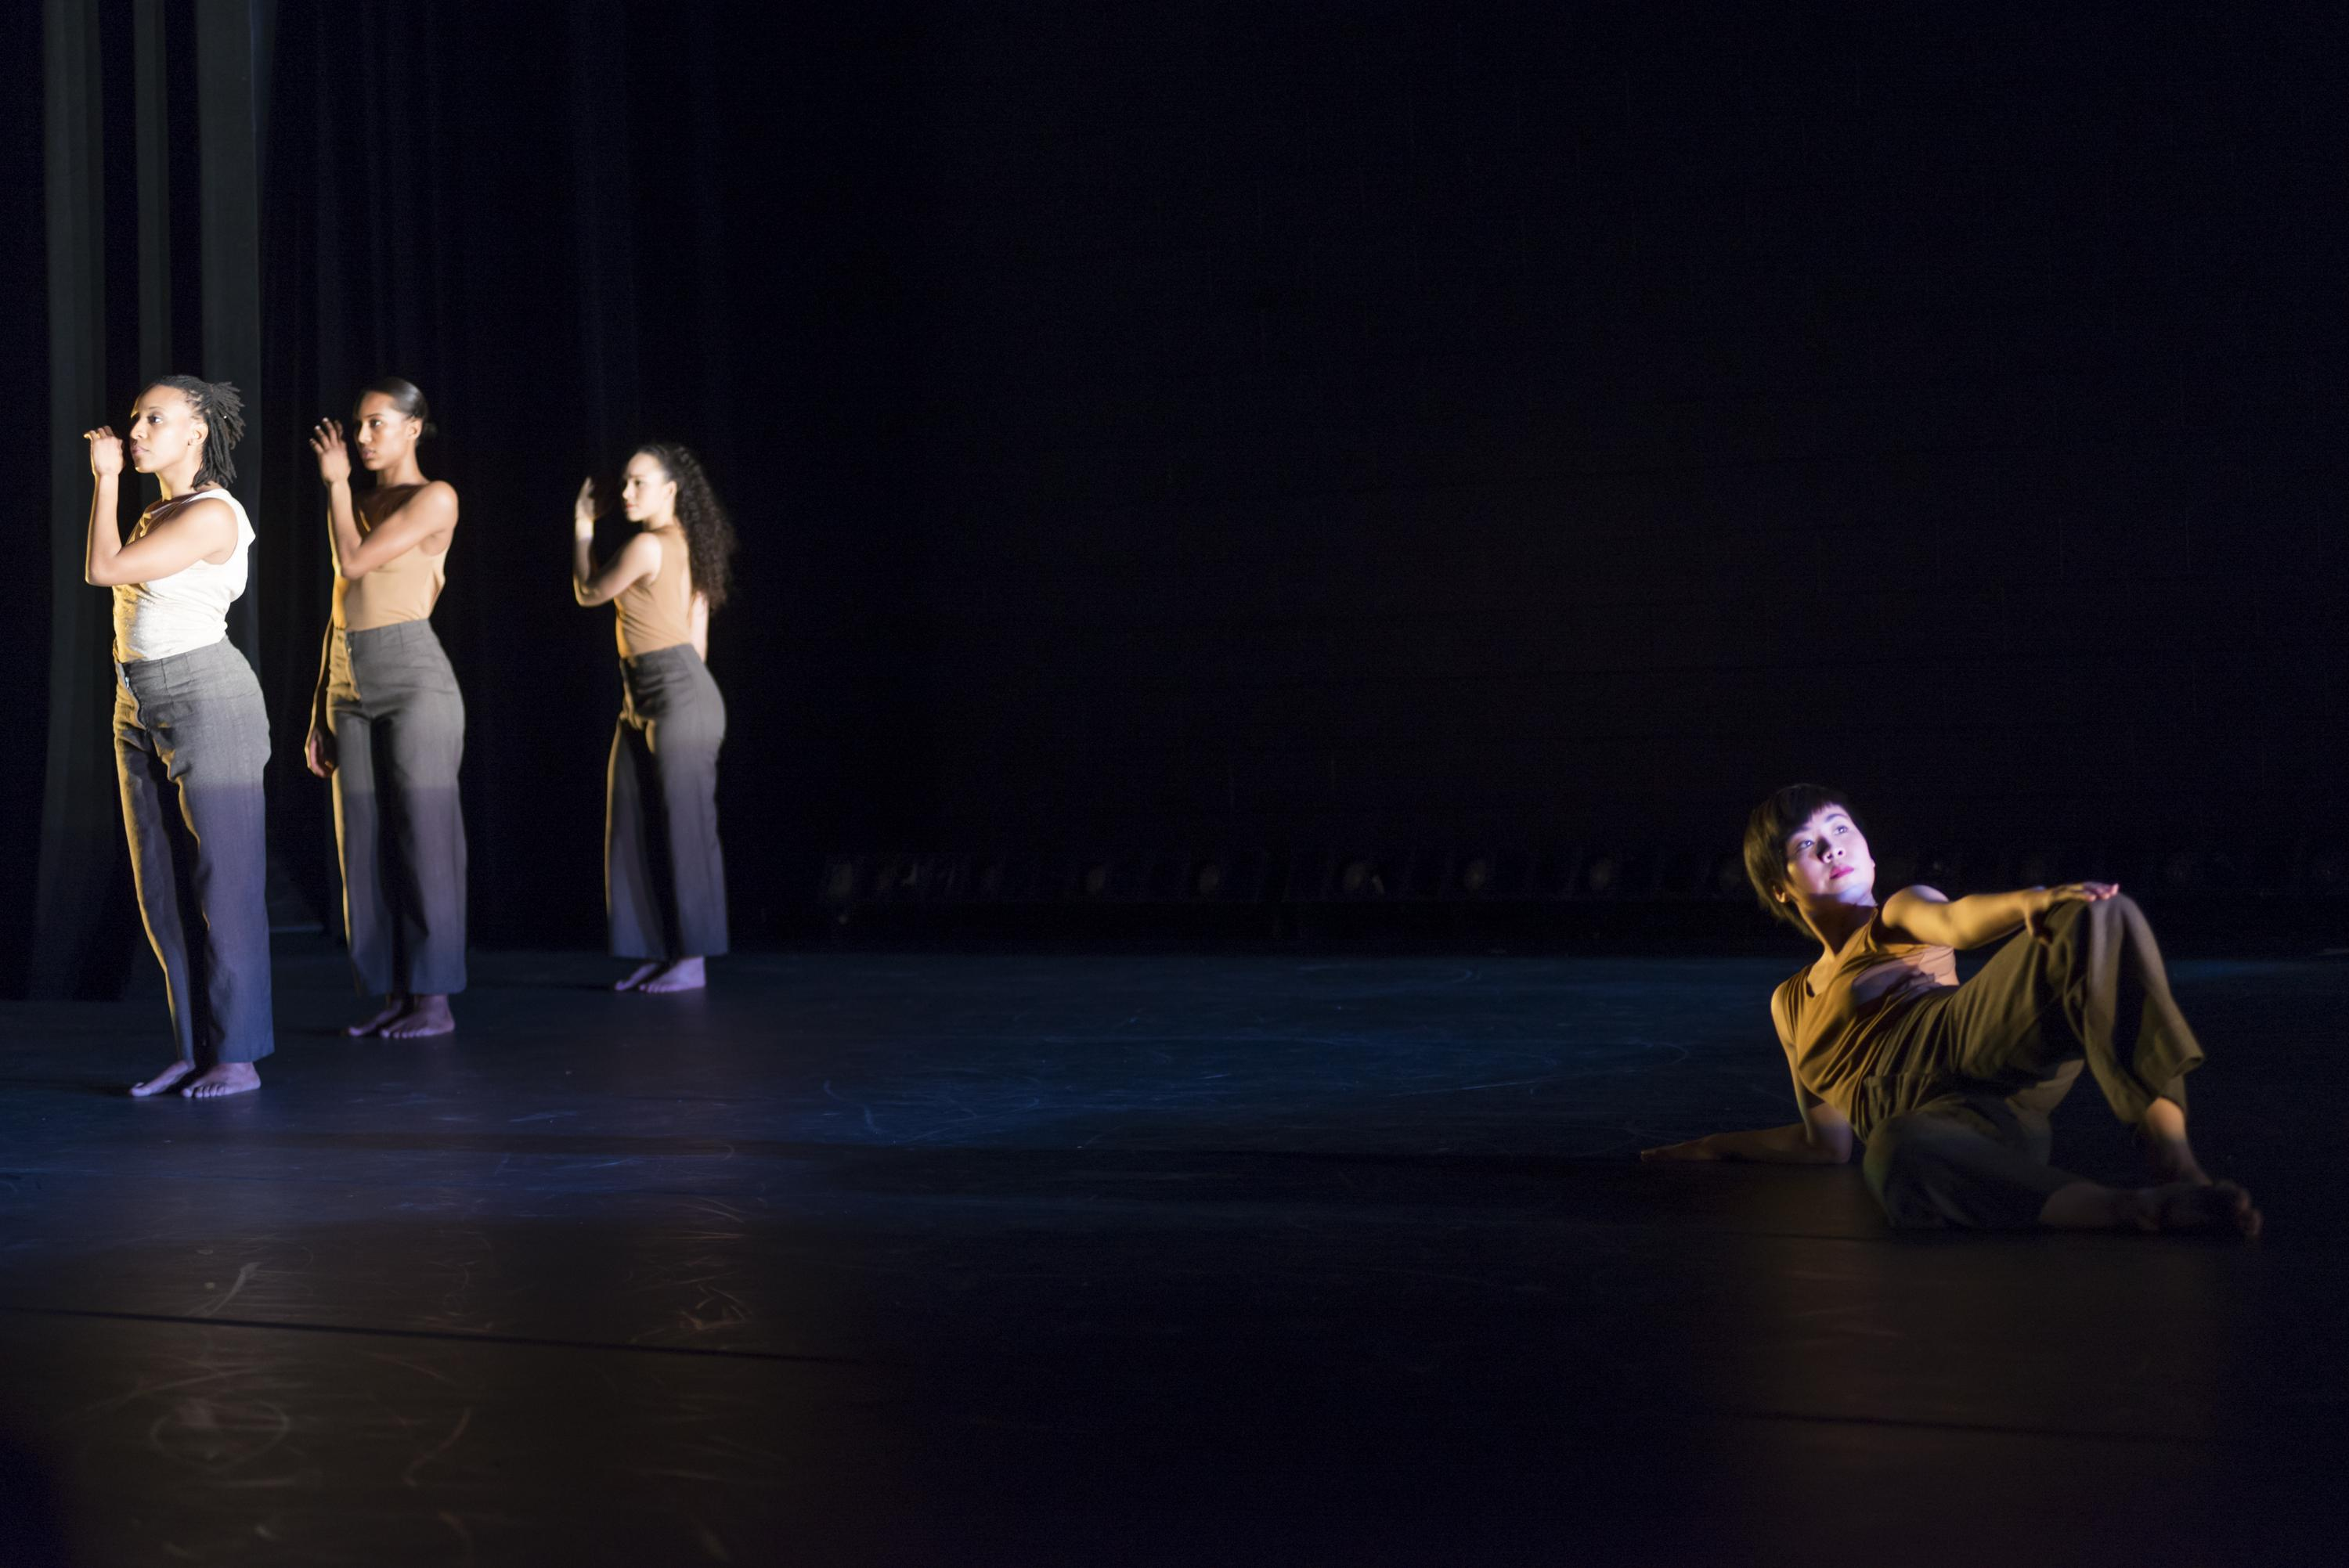 On a dark stage, three women stand in a retreating row on the left and a fourth reclines on the right